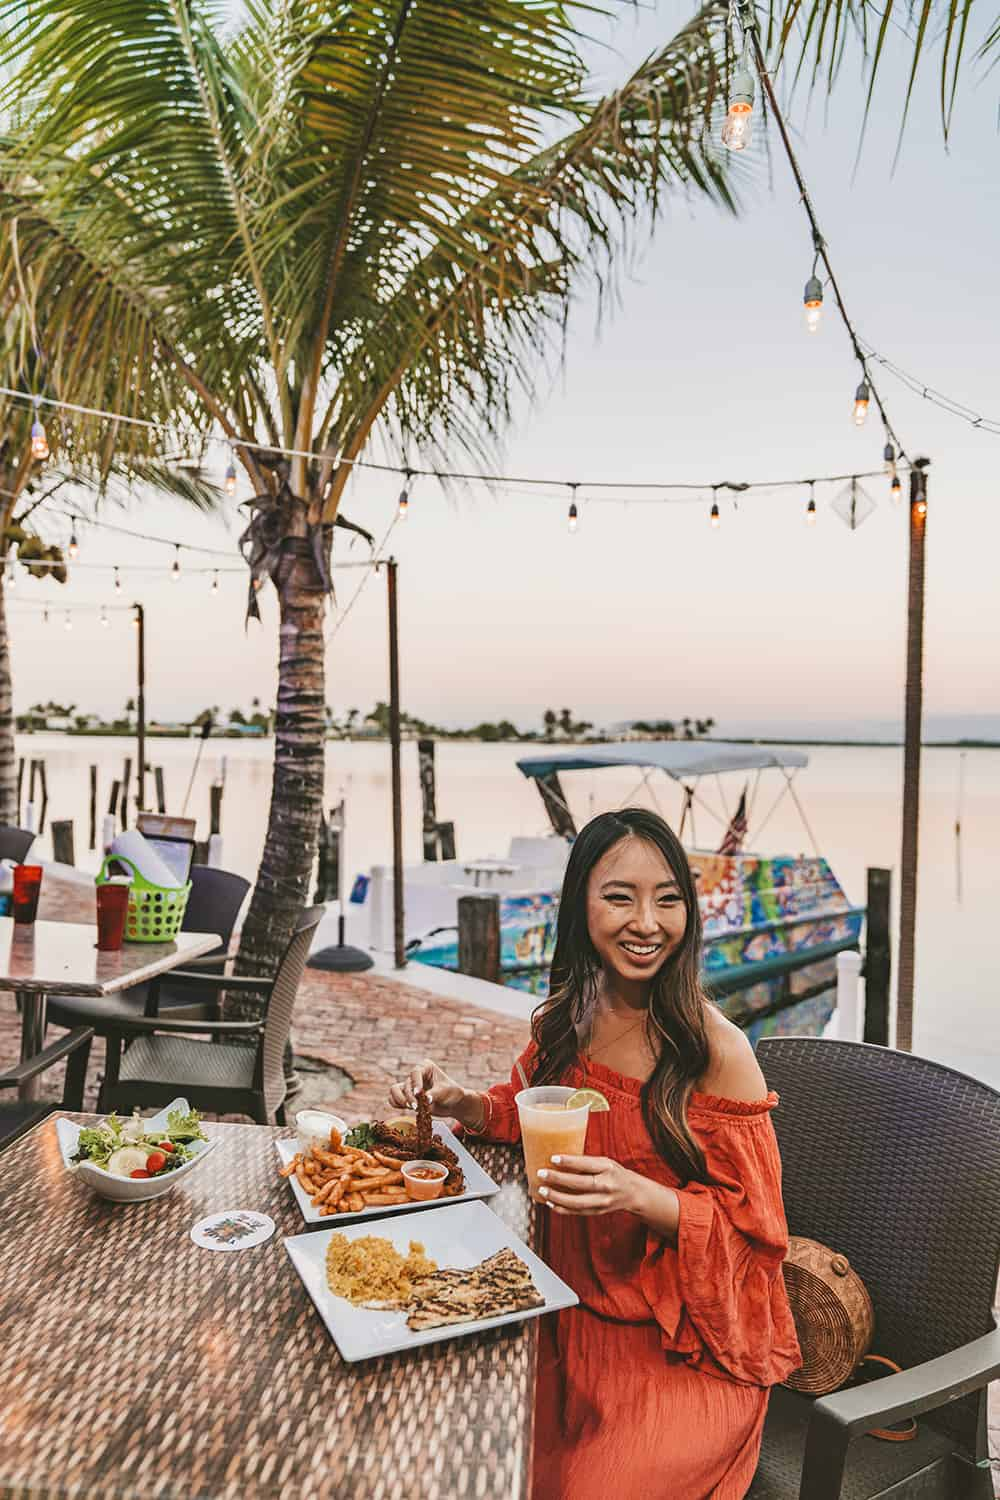 Yucatan Waterfront Restaurant in Fort Myers